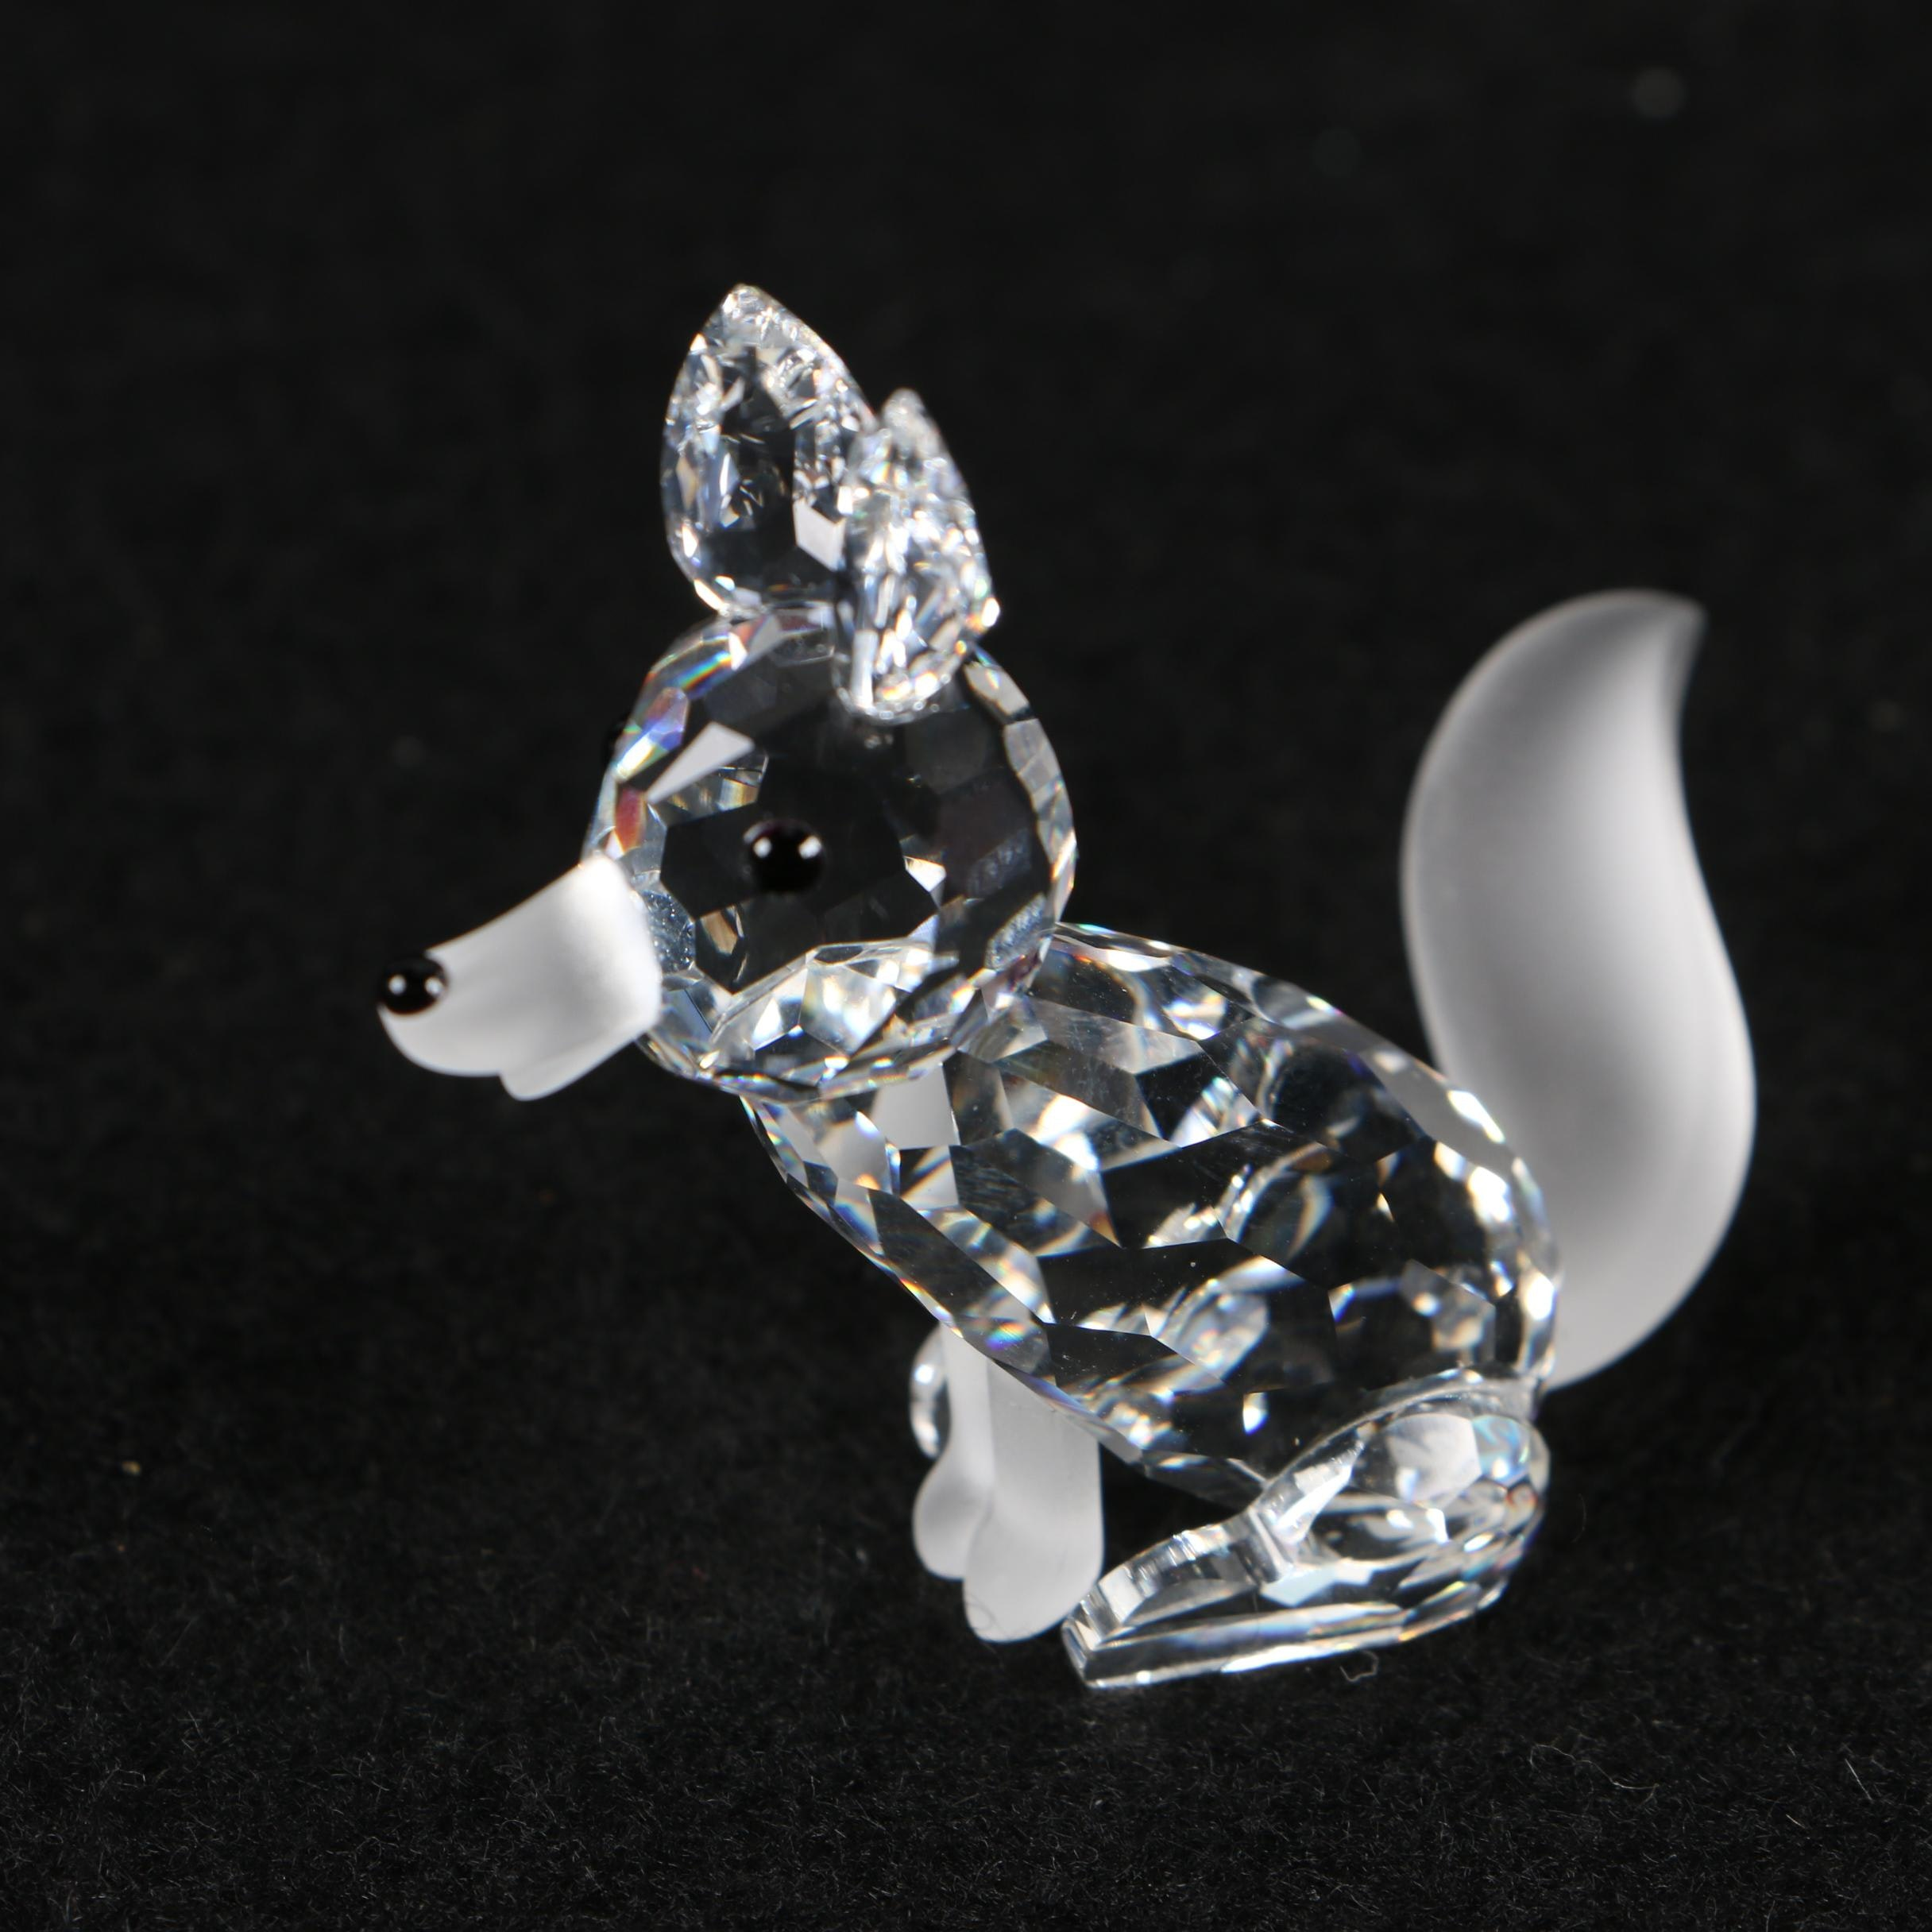 "Swarovski Crystal ""Fox"" Figurine by Adi Stocker"